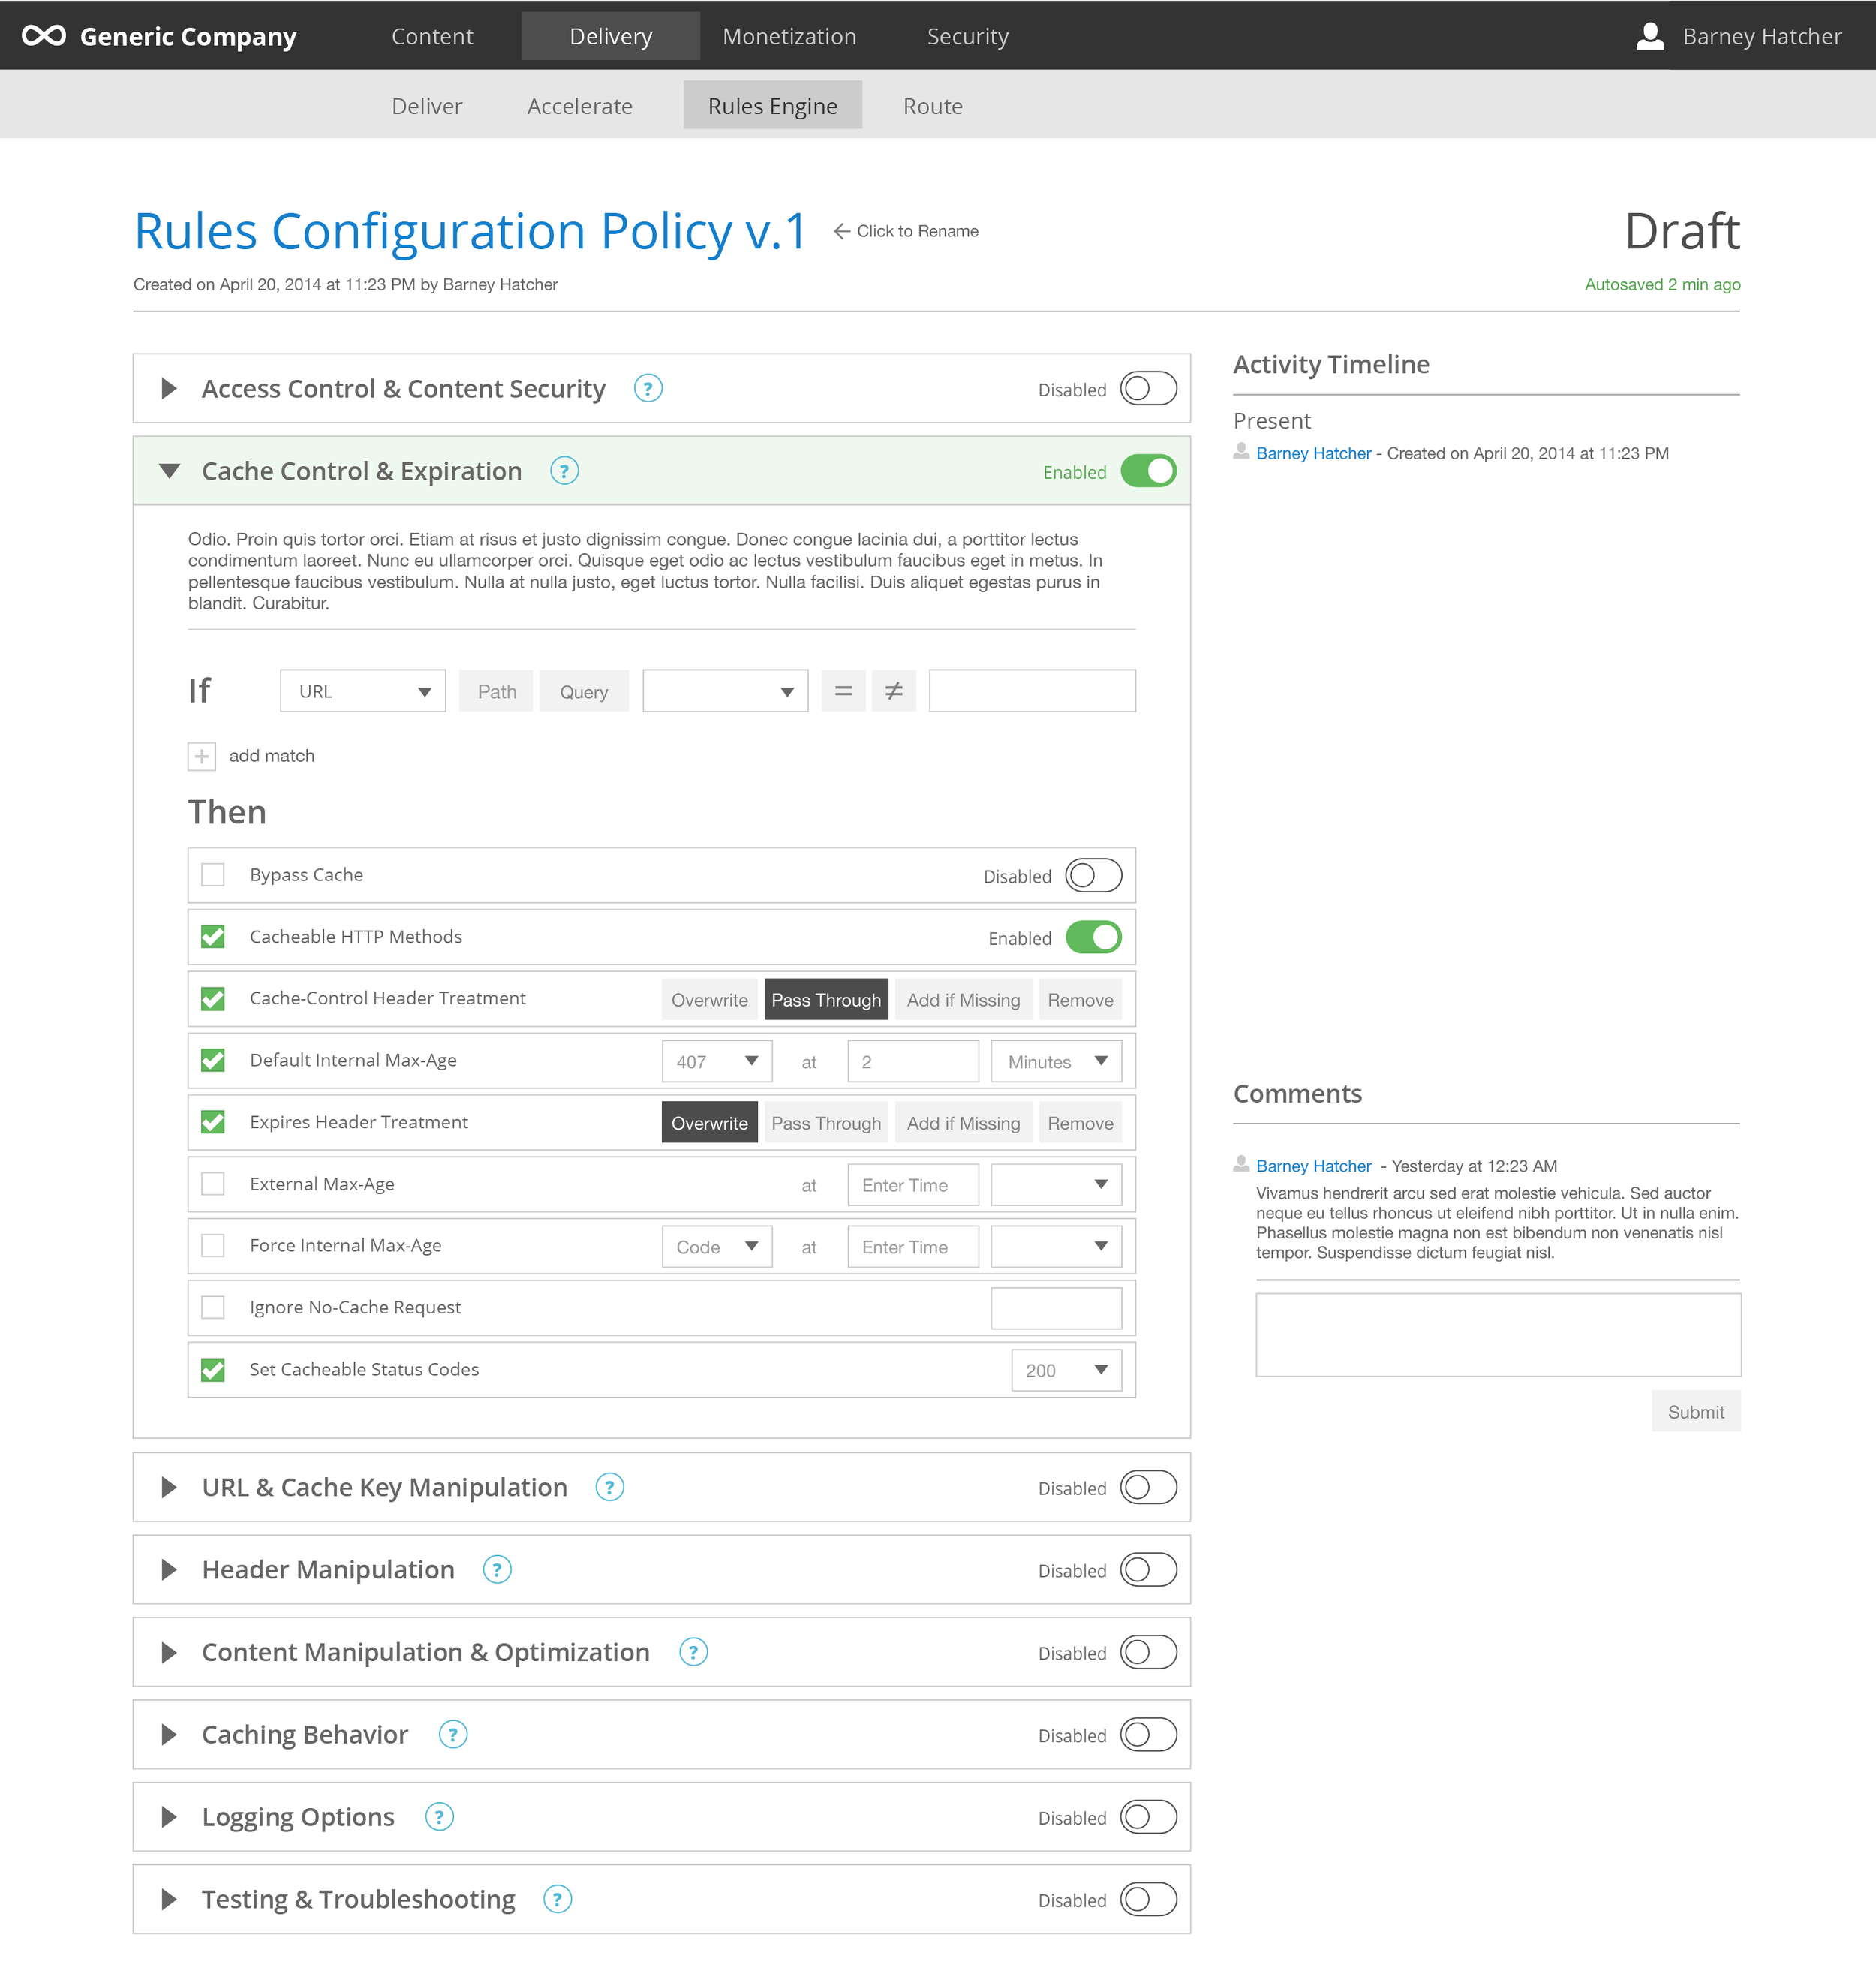 ux-rules-engine-v1_configuration policy-draft-1 enabled-features populated-match-url.png